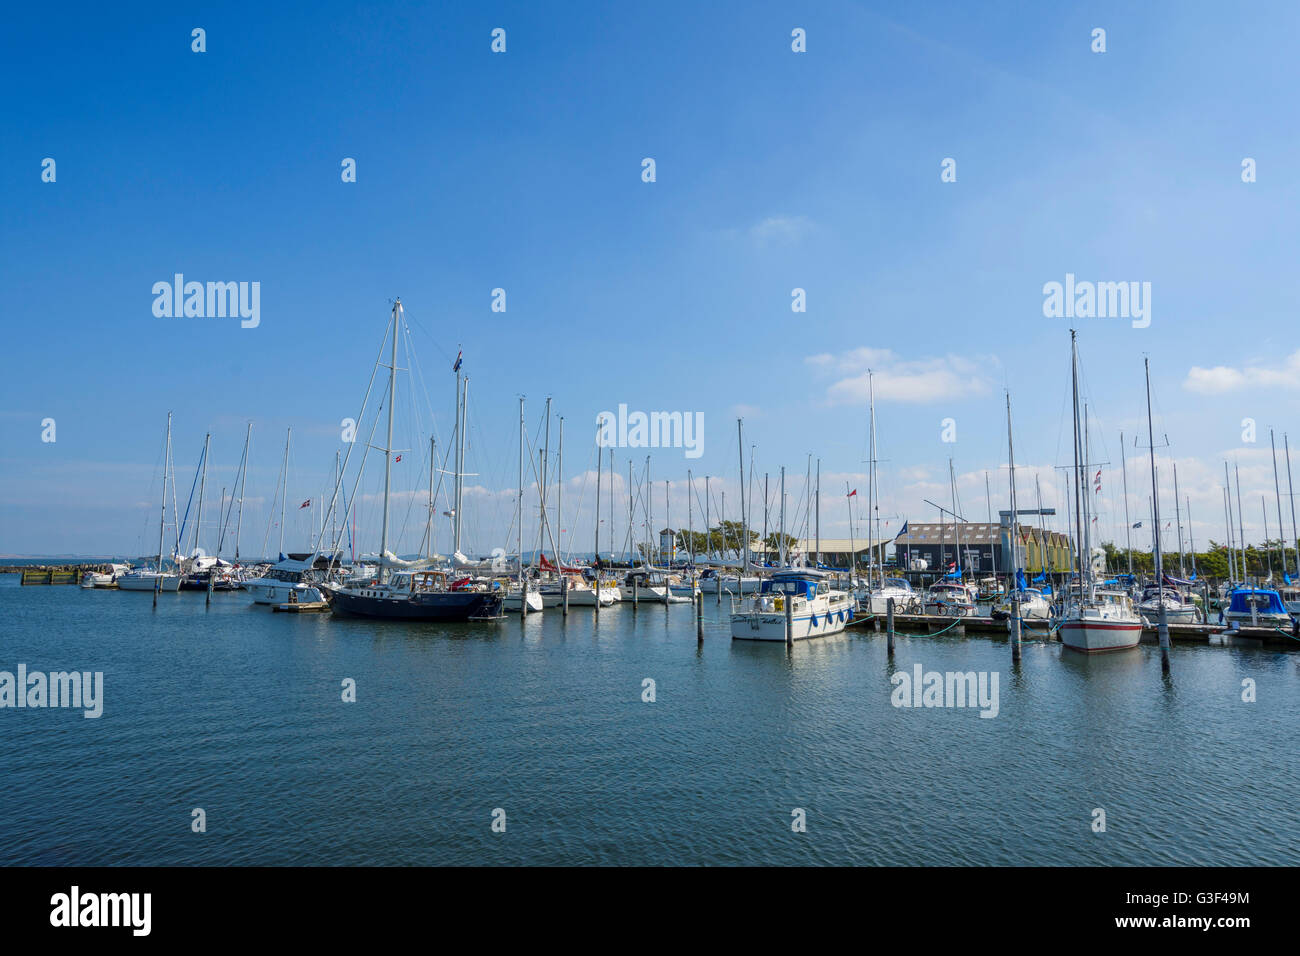 Harbor with Sailing Ships in Summer, Thisted, North Jutland, Denmark - Stock Image